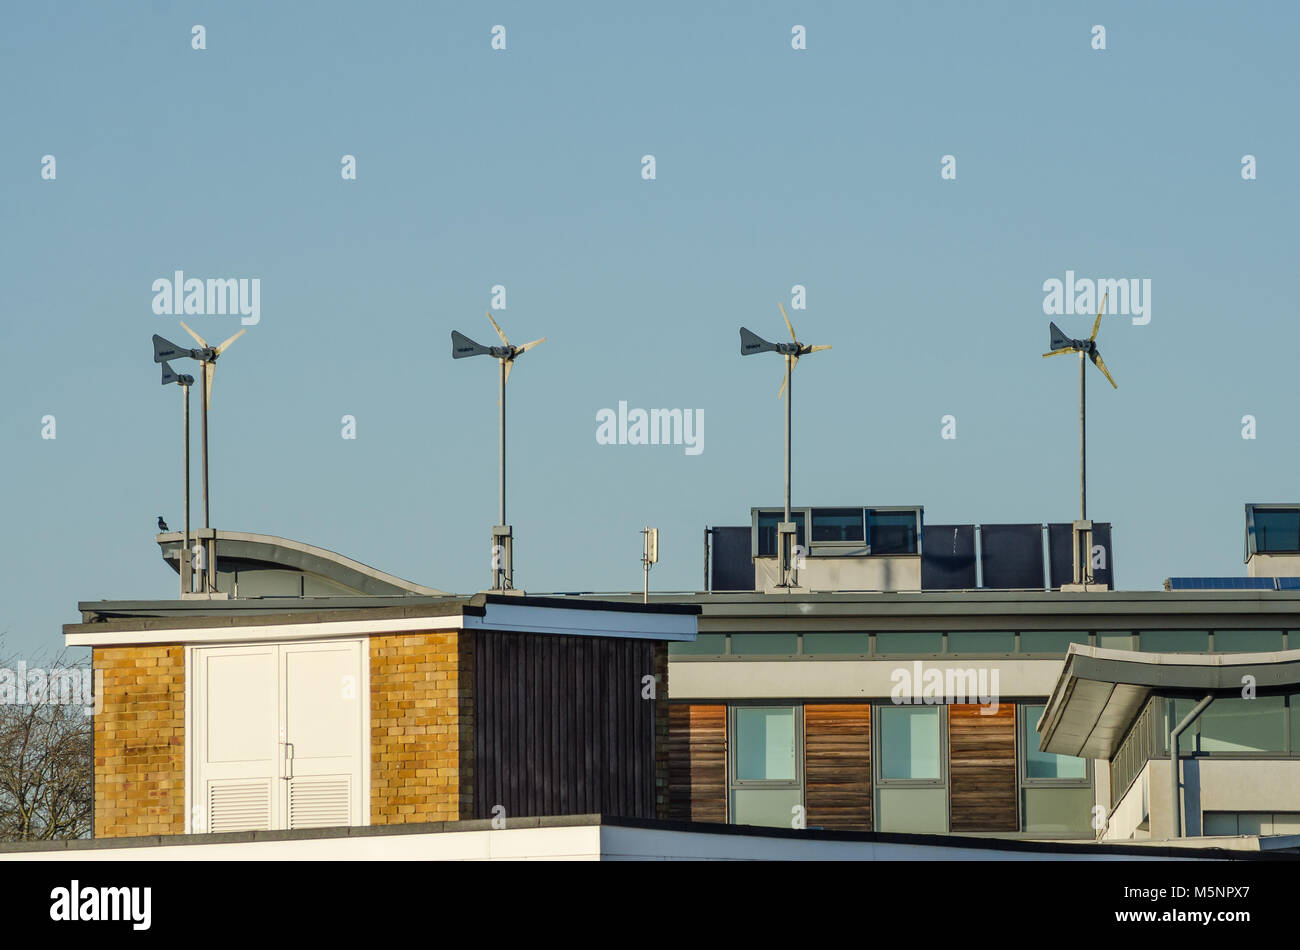 Small Wind Turbines On The Roof Of A Building Generate Electricity To Power  The Building